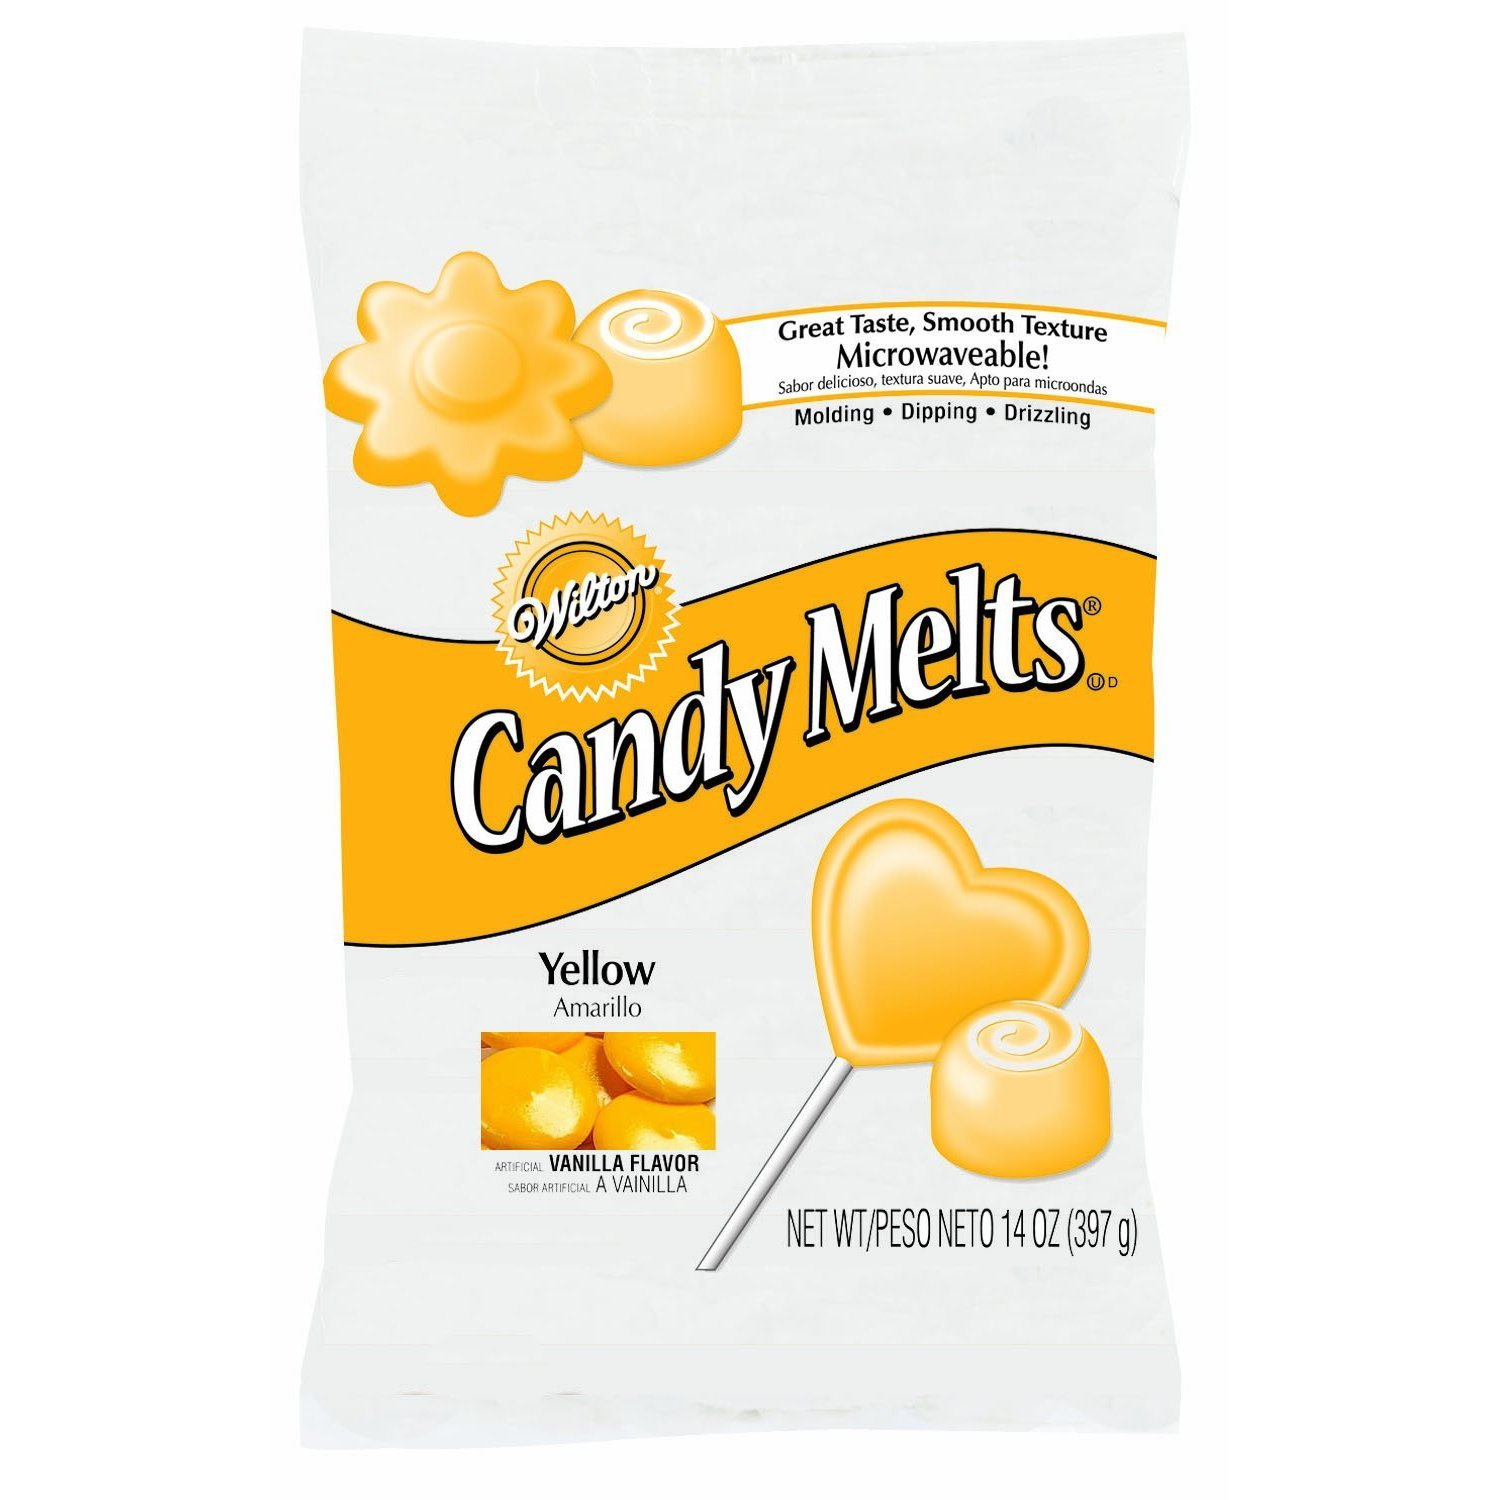 Amazon.com : 2 x Wilton 12 oz (340g) YELLOW Candy Melts ...